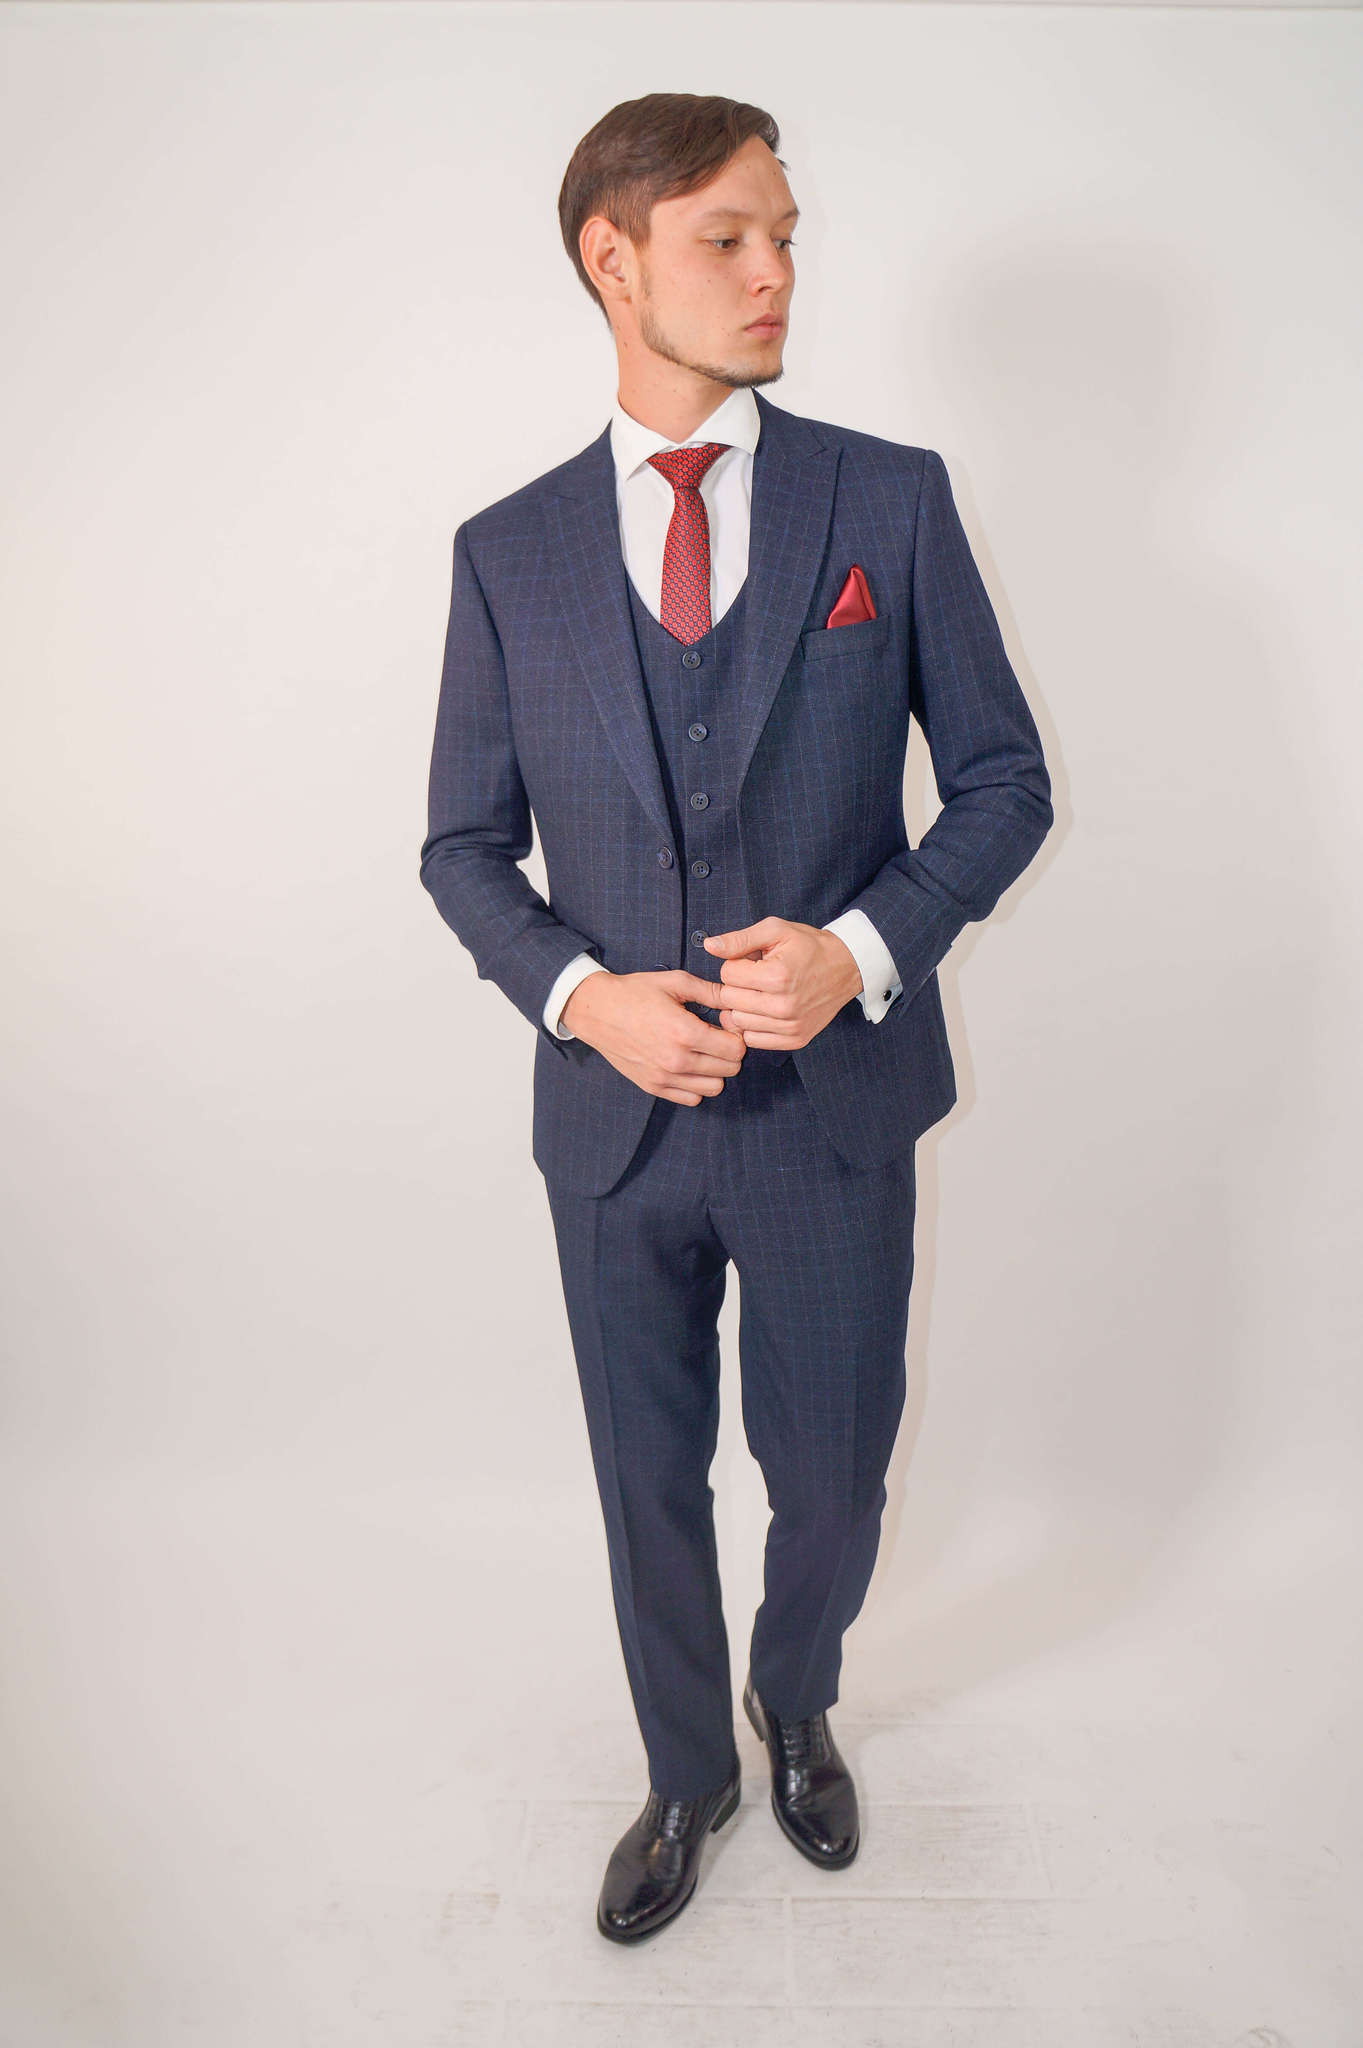 Костюмы Slim fit CESARE MARIANO / Костюм - тройка slim fit DSC02303.jpg